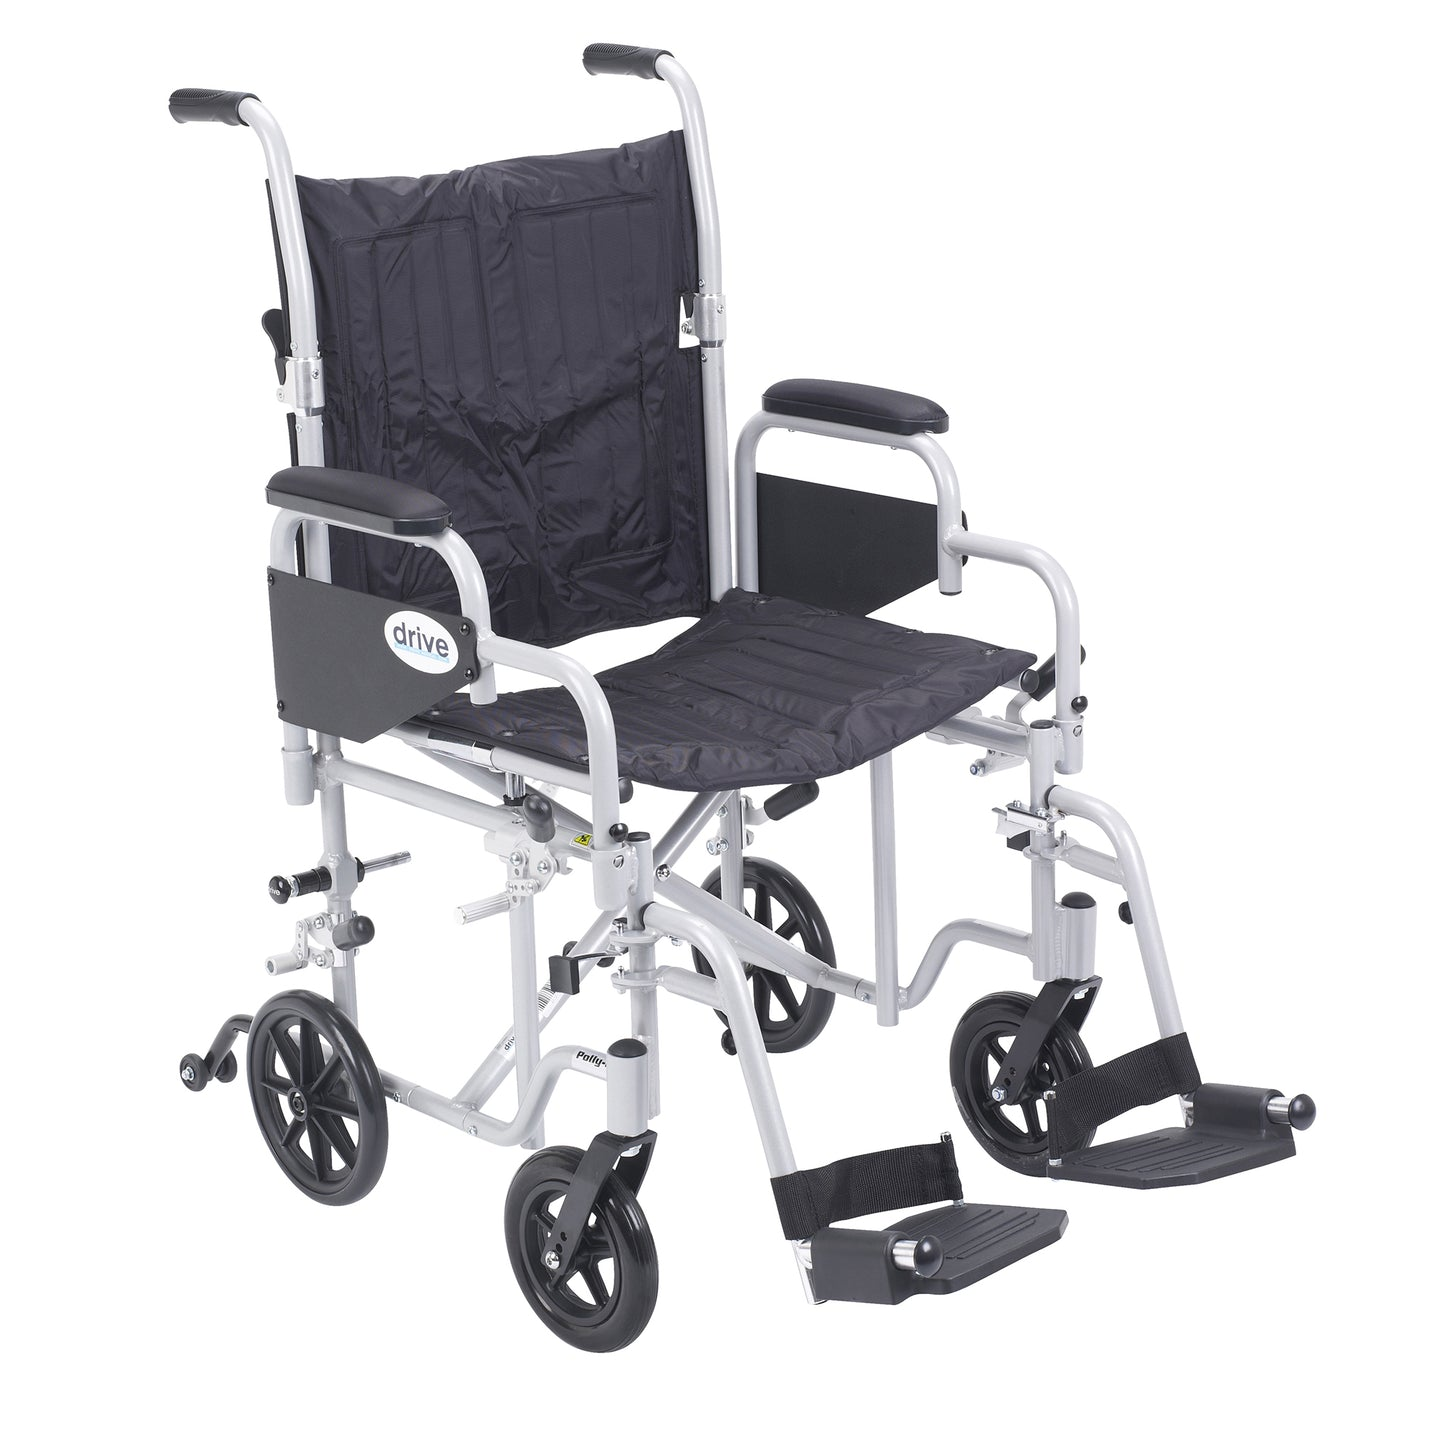 Drive Poly Fly Light Weight Transport Chair Wheelchair with Swing away Footrests- 20